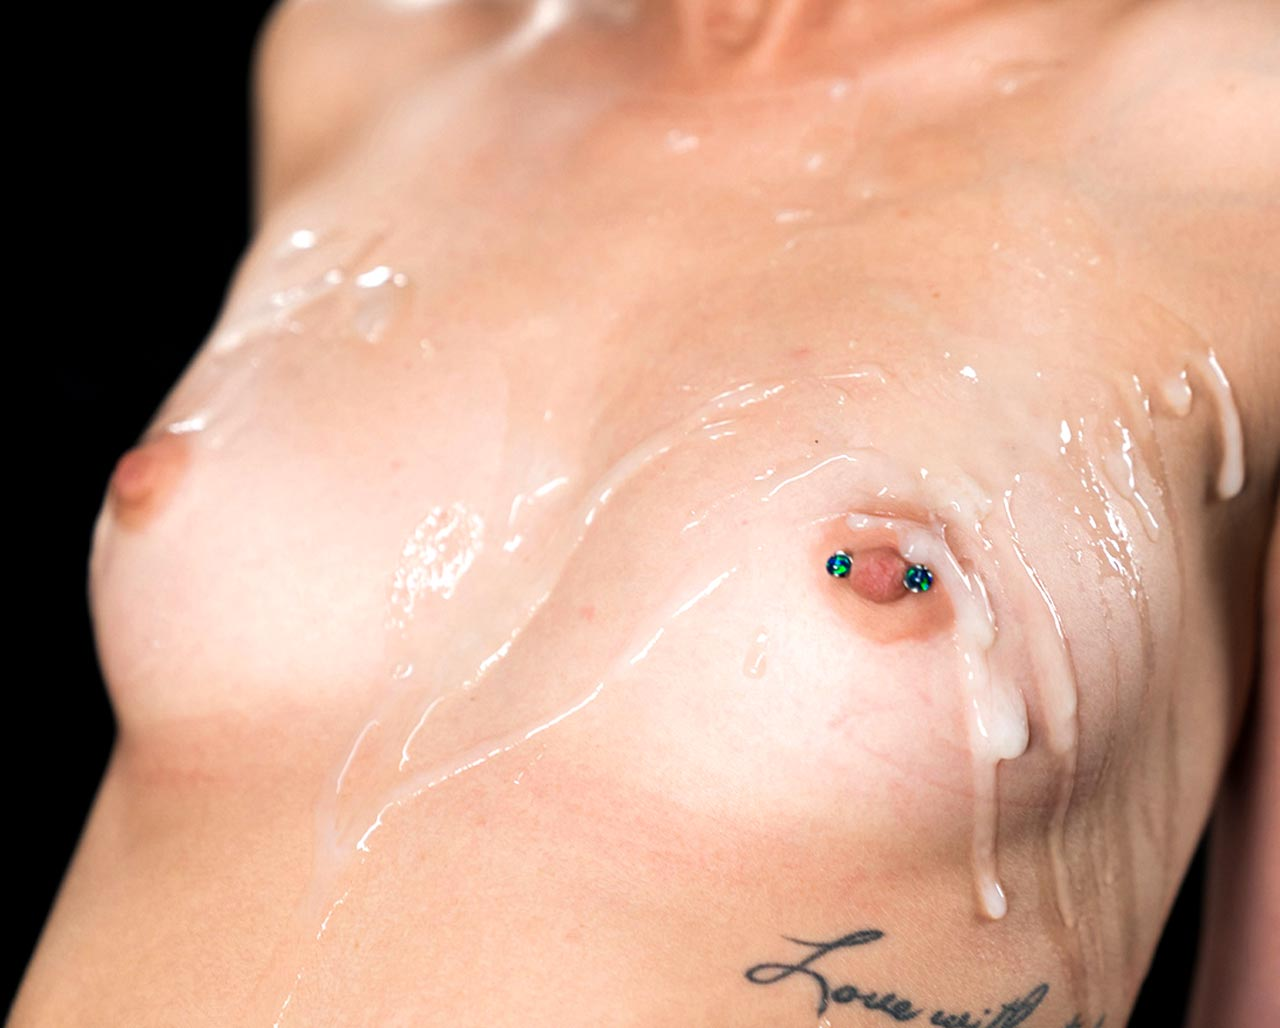 Body Bukkake Kristen Scott Uses Her Sperm Covered Body to Make You Cum. An uncensored SpermMania video. 18 cumshots on a nude girl.